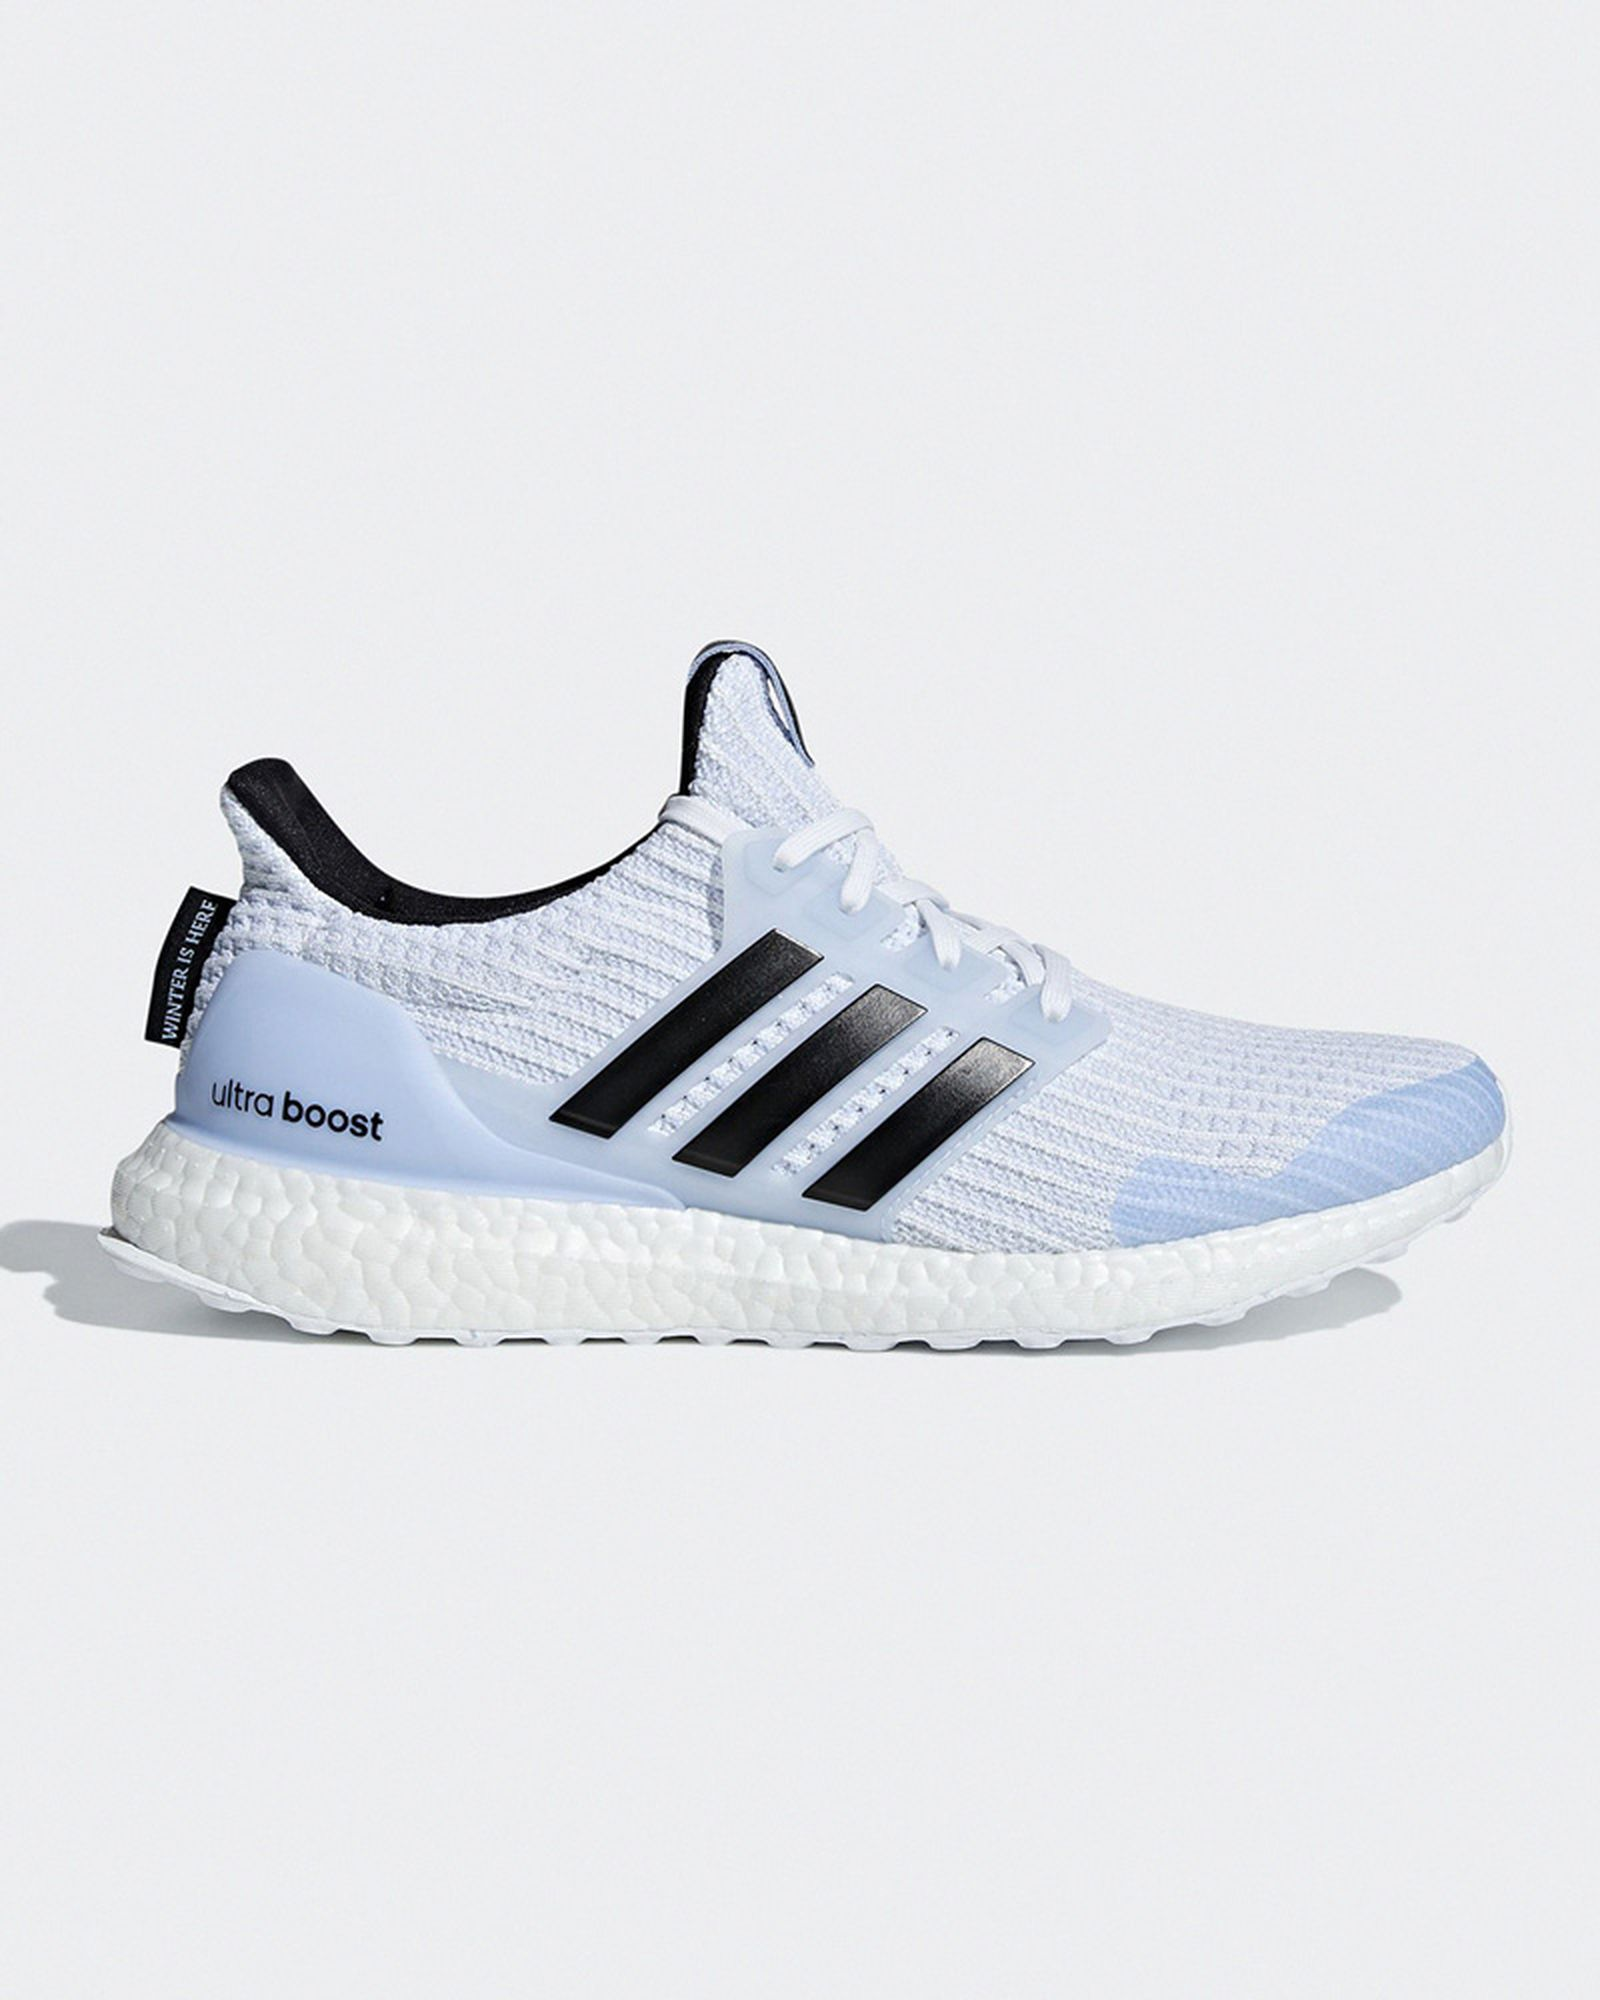 game-of-thrones-adidas-ultra-boost-colorways-01